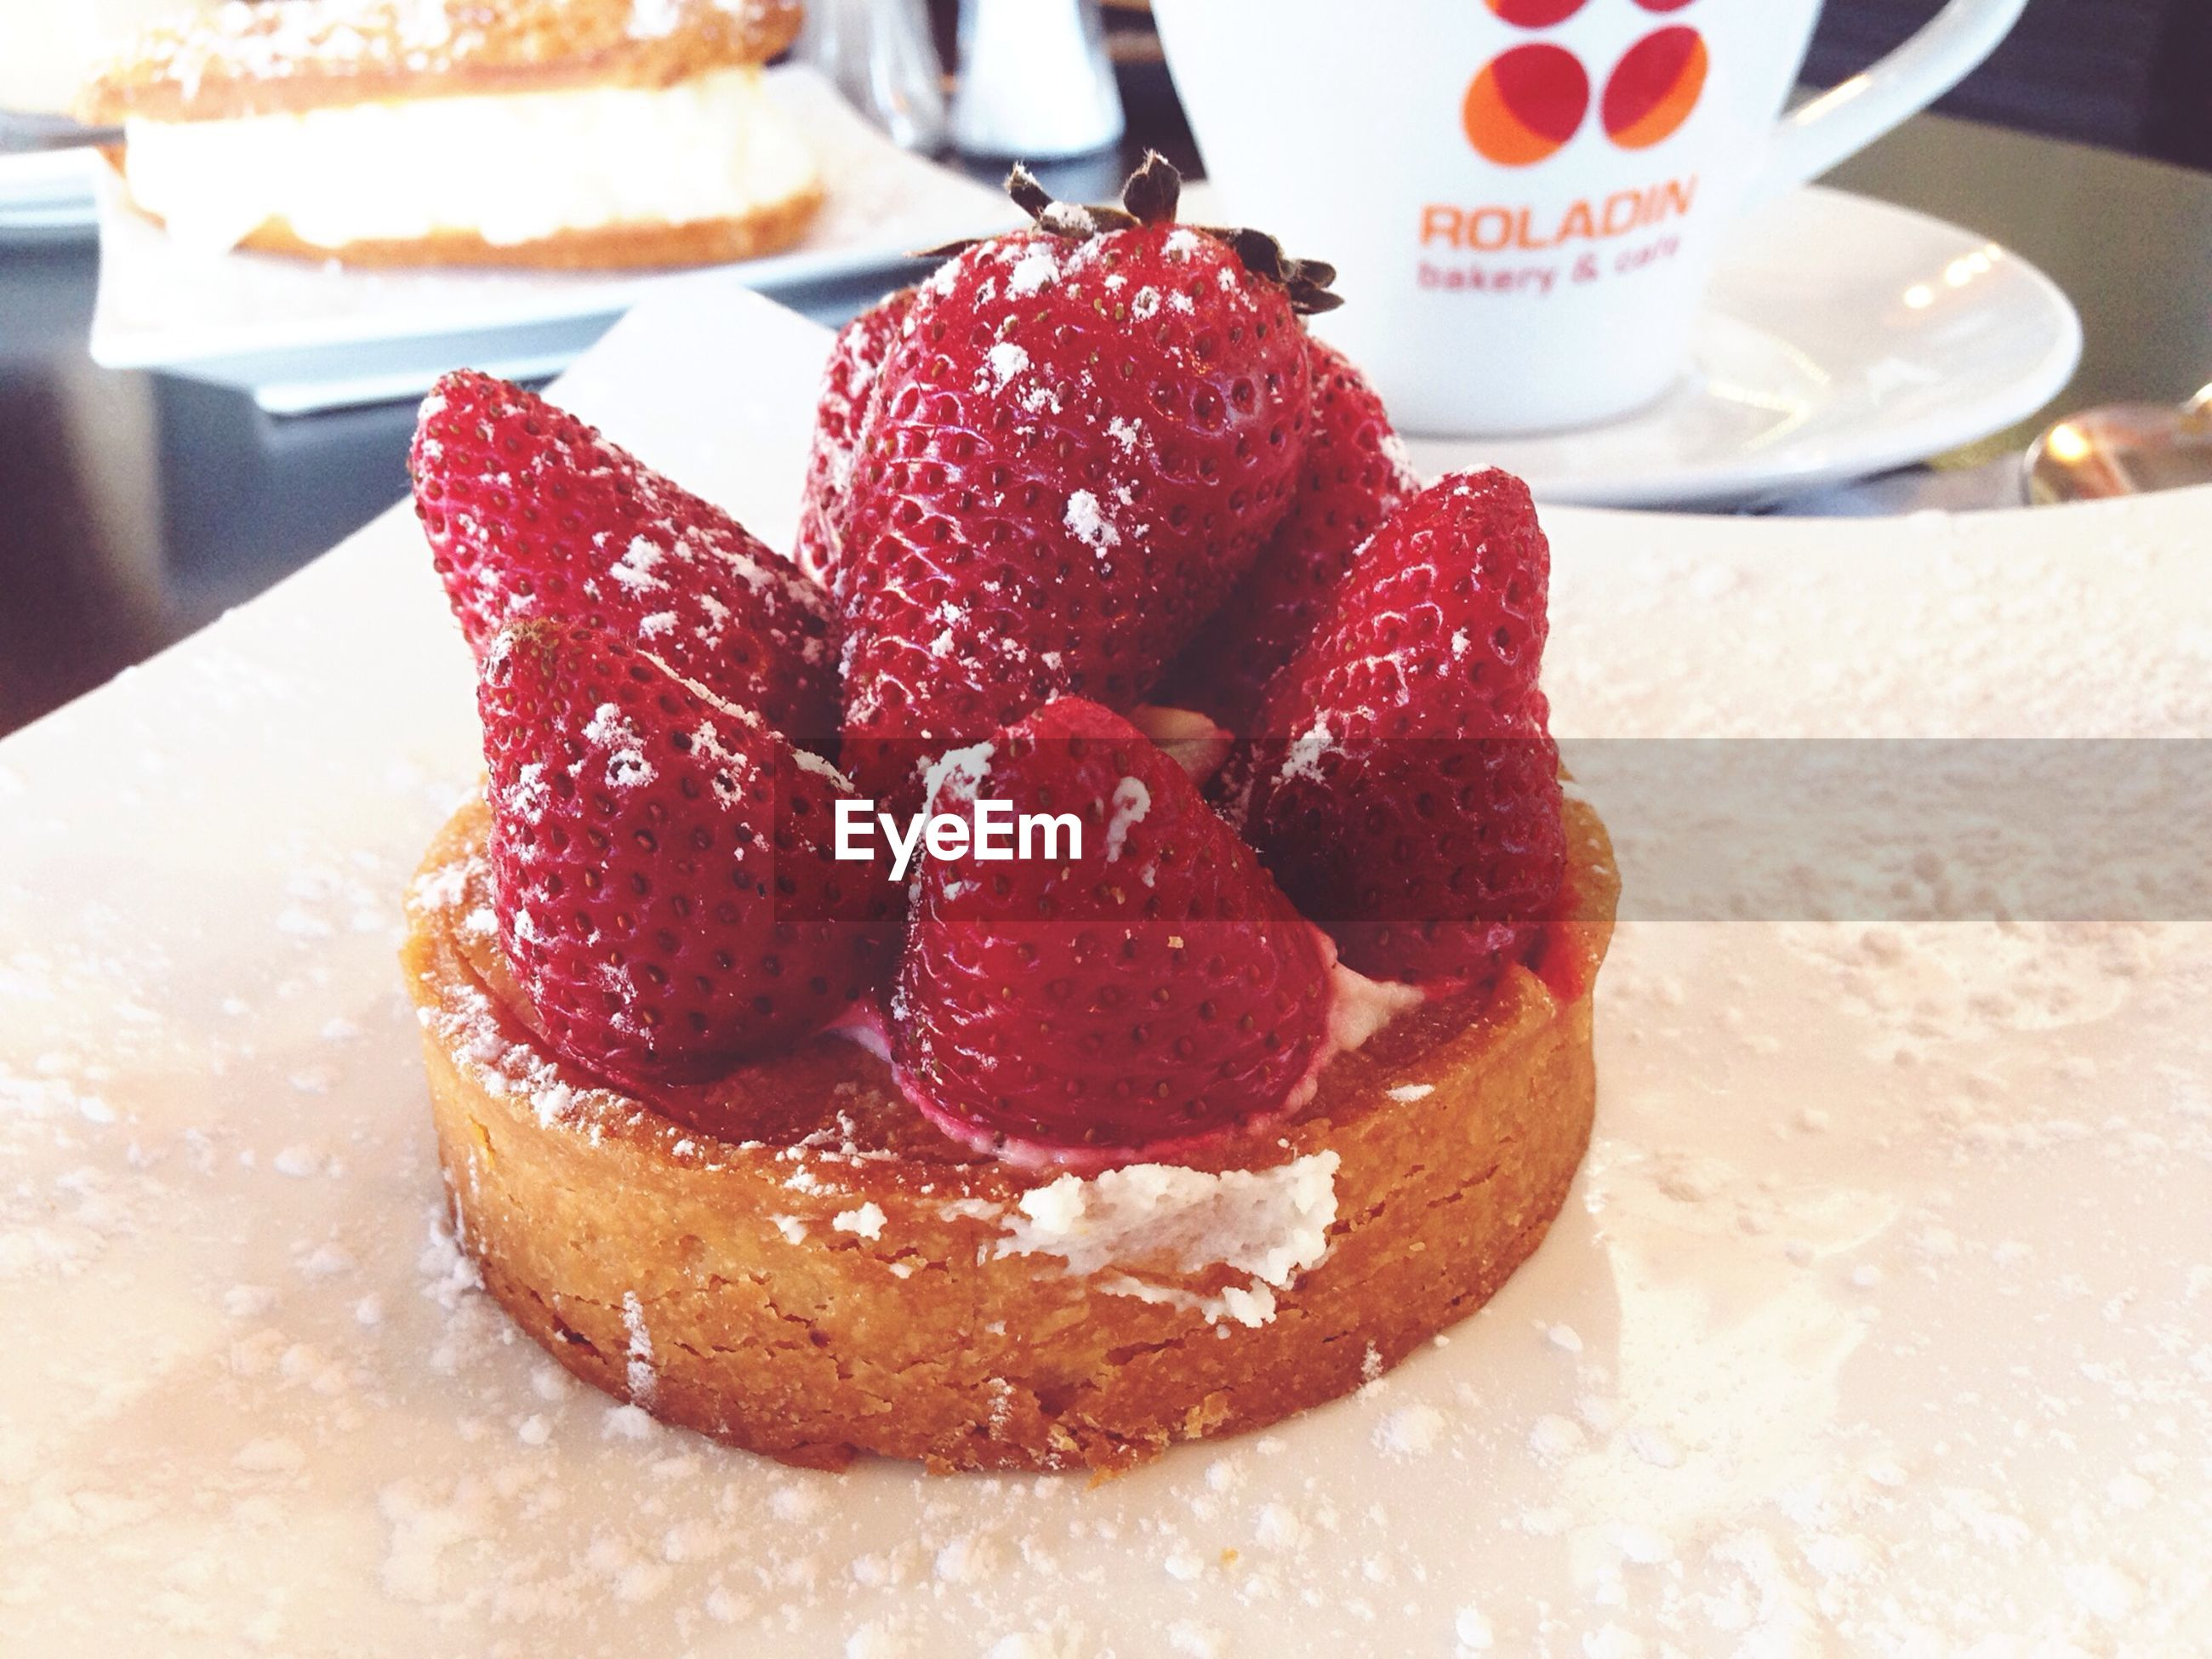 food and drink, sweet food, food, freshness, dessert, indoors, indulgence, ready-to-eat, unhealthy eating, still life, cake, strawberry, temptation, close-up, fruit, table, cream, plate, chocolate, raspberry